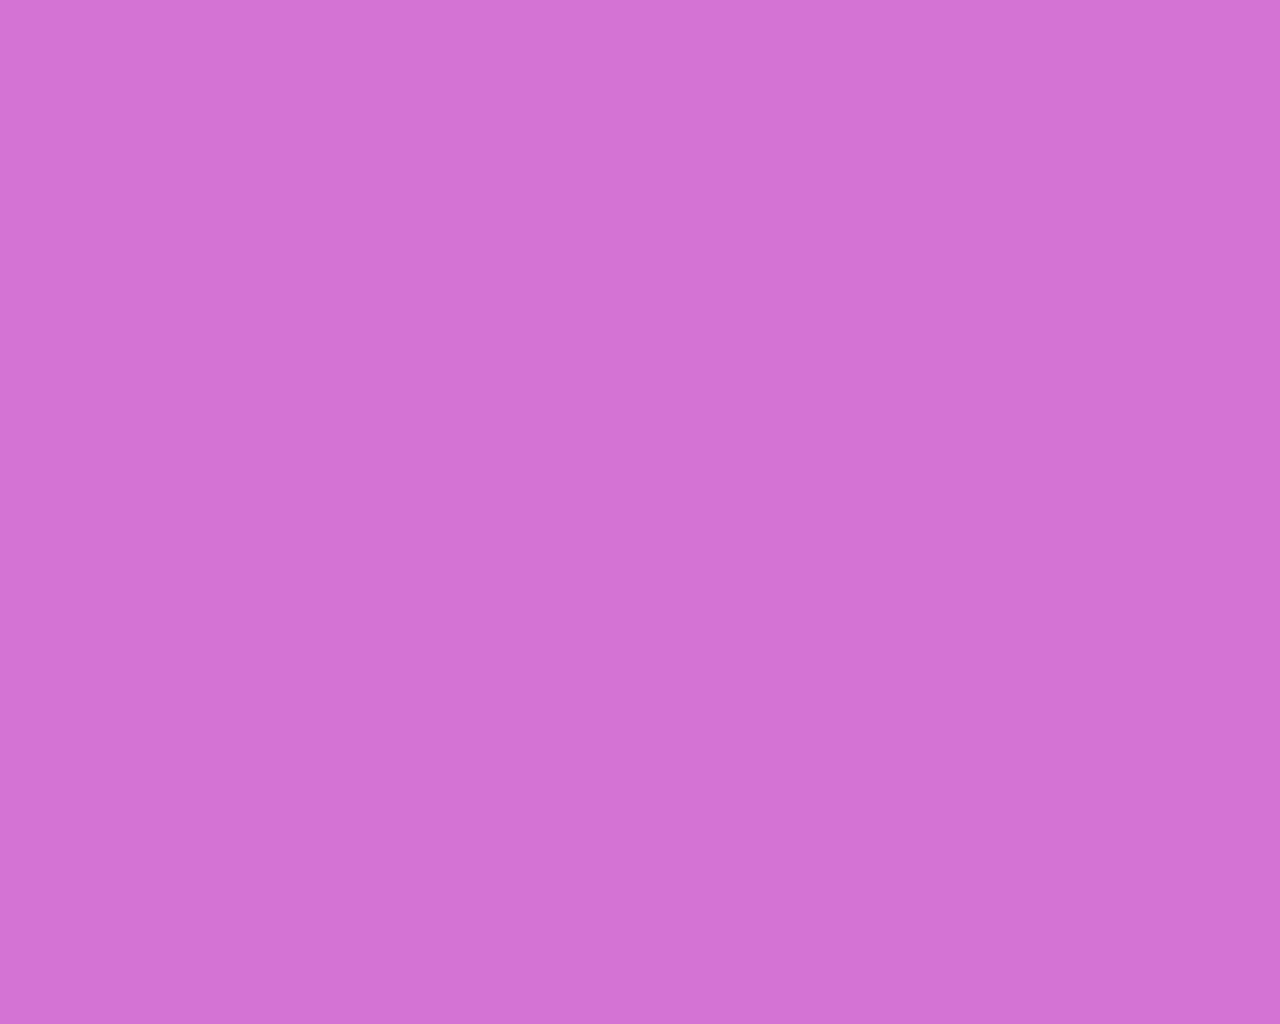 1280x1024 Deep Mauve Solid Color Background